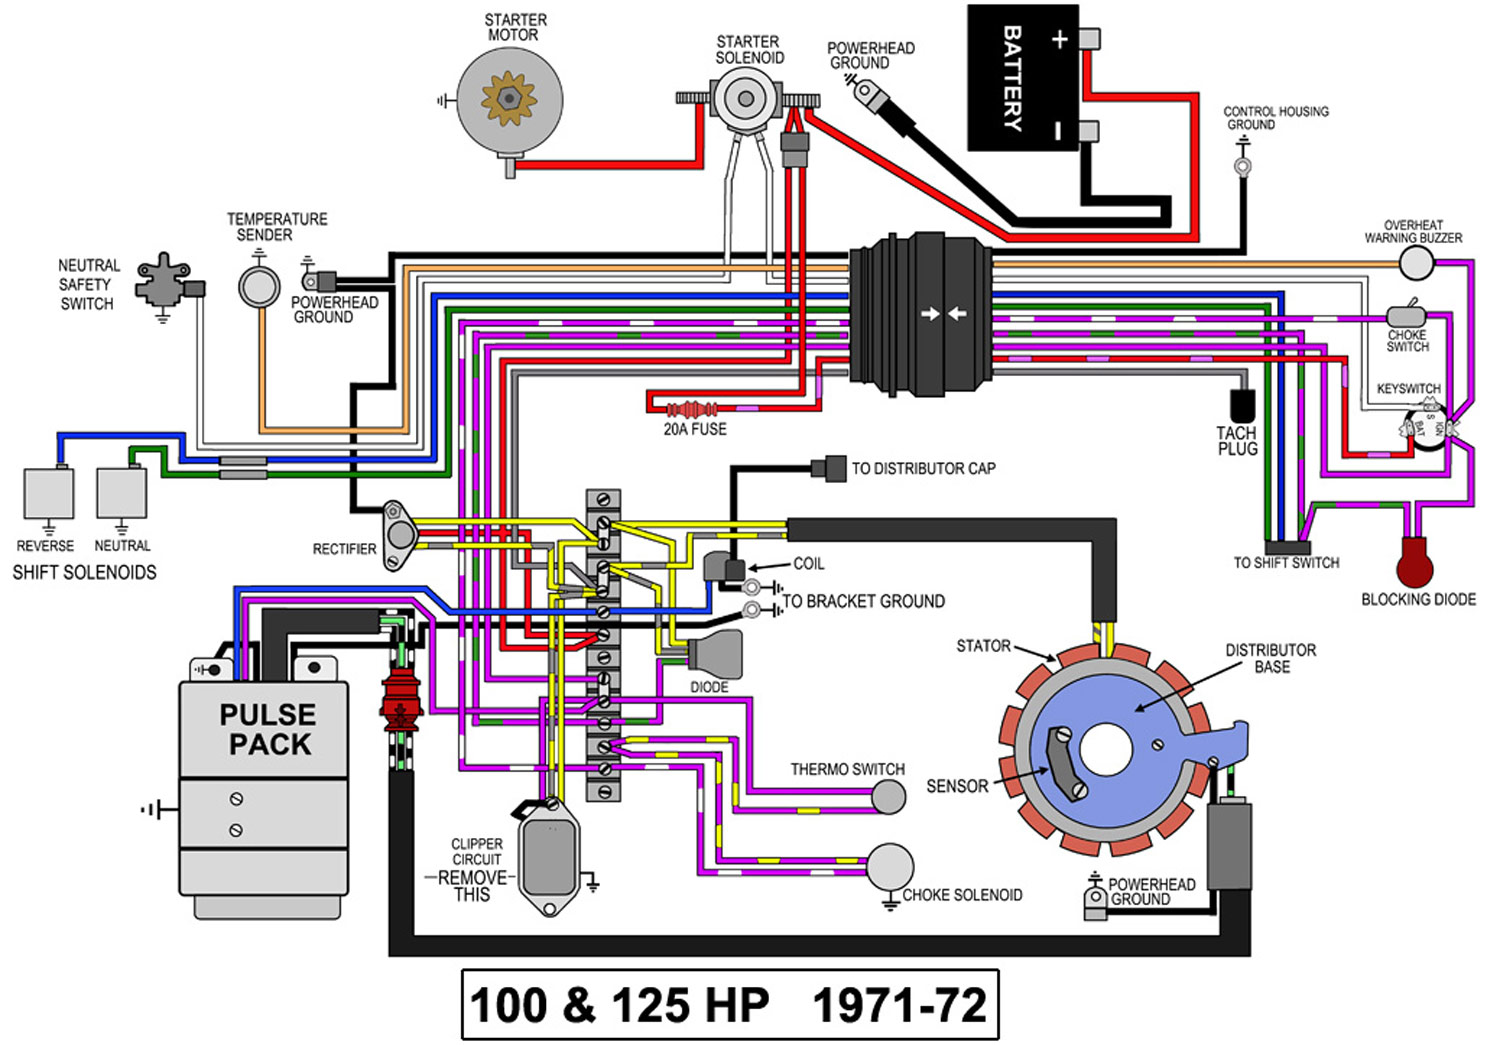 hight resolution of 1998 omc wiring diagram data schematic diagram 1998 omc wiring diagram